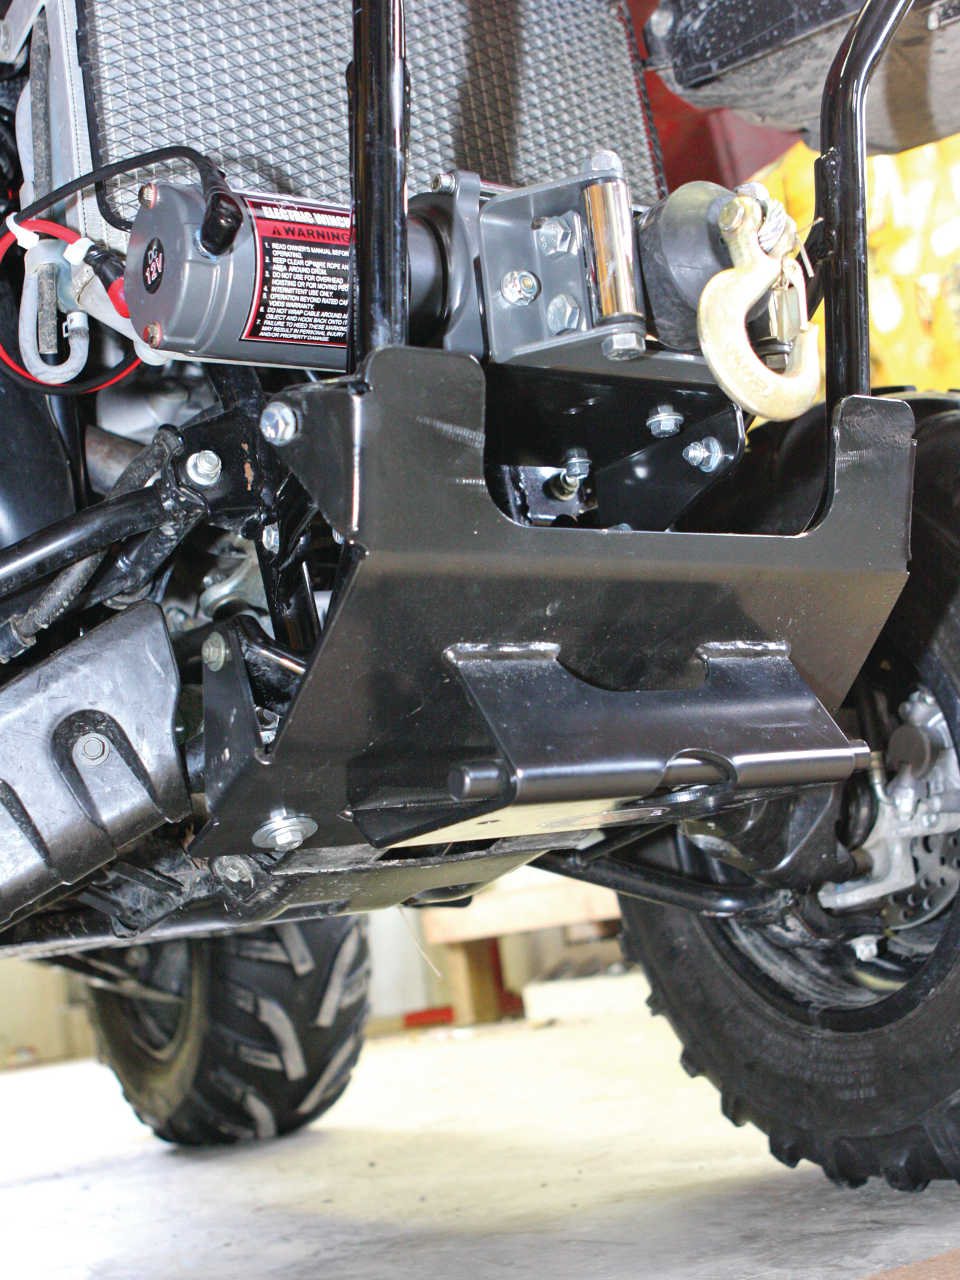 2013 american manufactures generation ii eagle plow atv snow plow this is the plow mount bolted onto our atv publicscrutiny Image collections